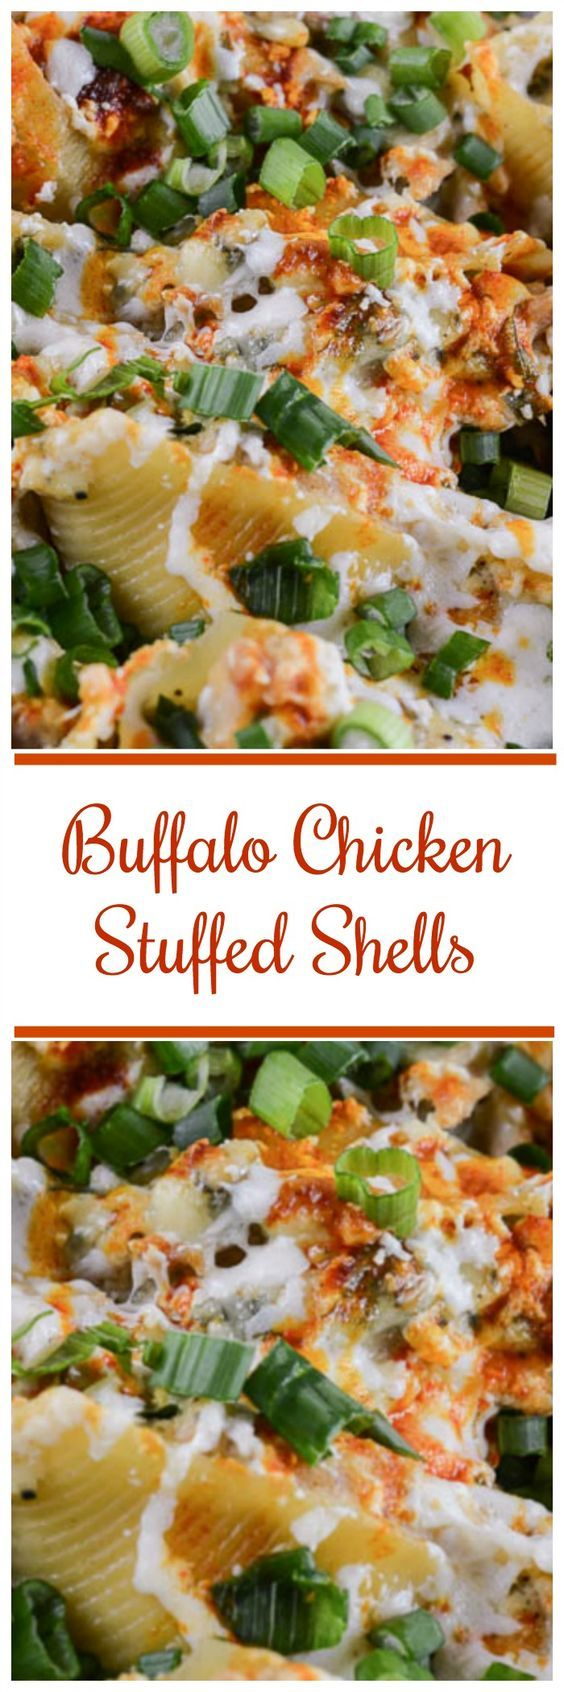 Buffalo Chicken Stuffed Shells combine the spicy flavor of buffalo chicken wings and the creamy, cheesy goodness of melted mozzarella, and salty blue cheese all stuffed into cute convenient pasta shells. ~ FlavorMosaic.com